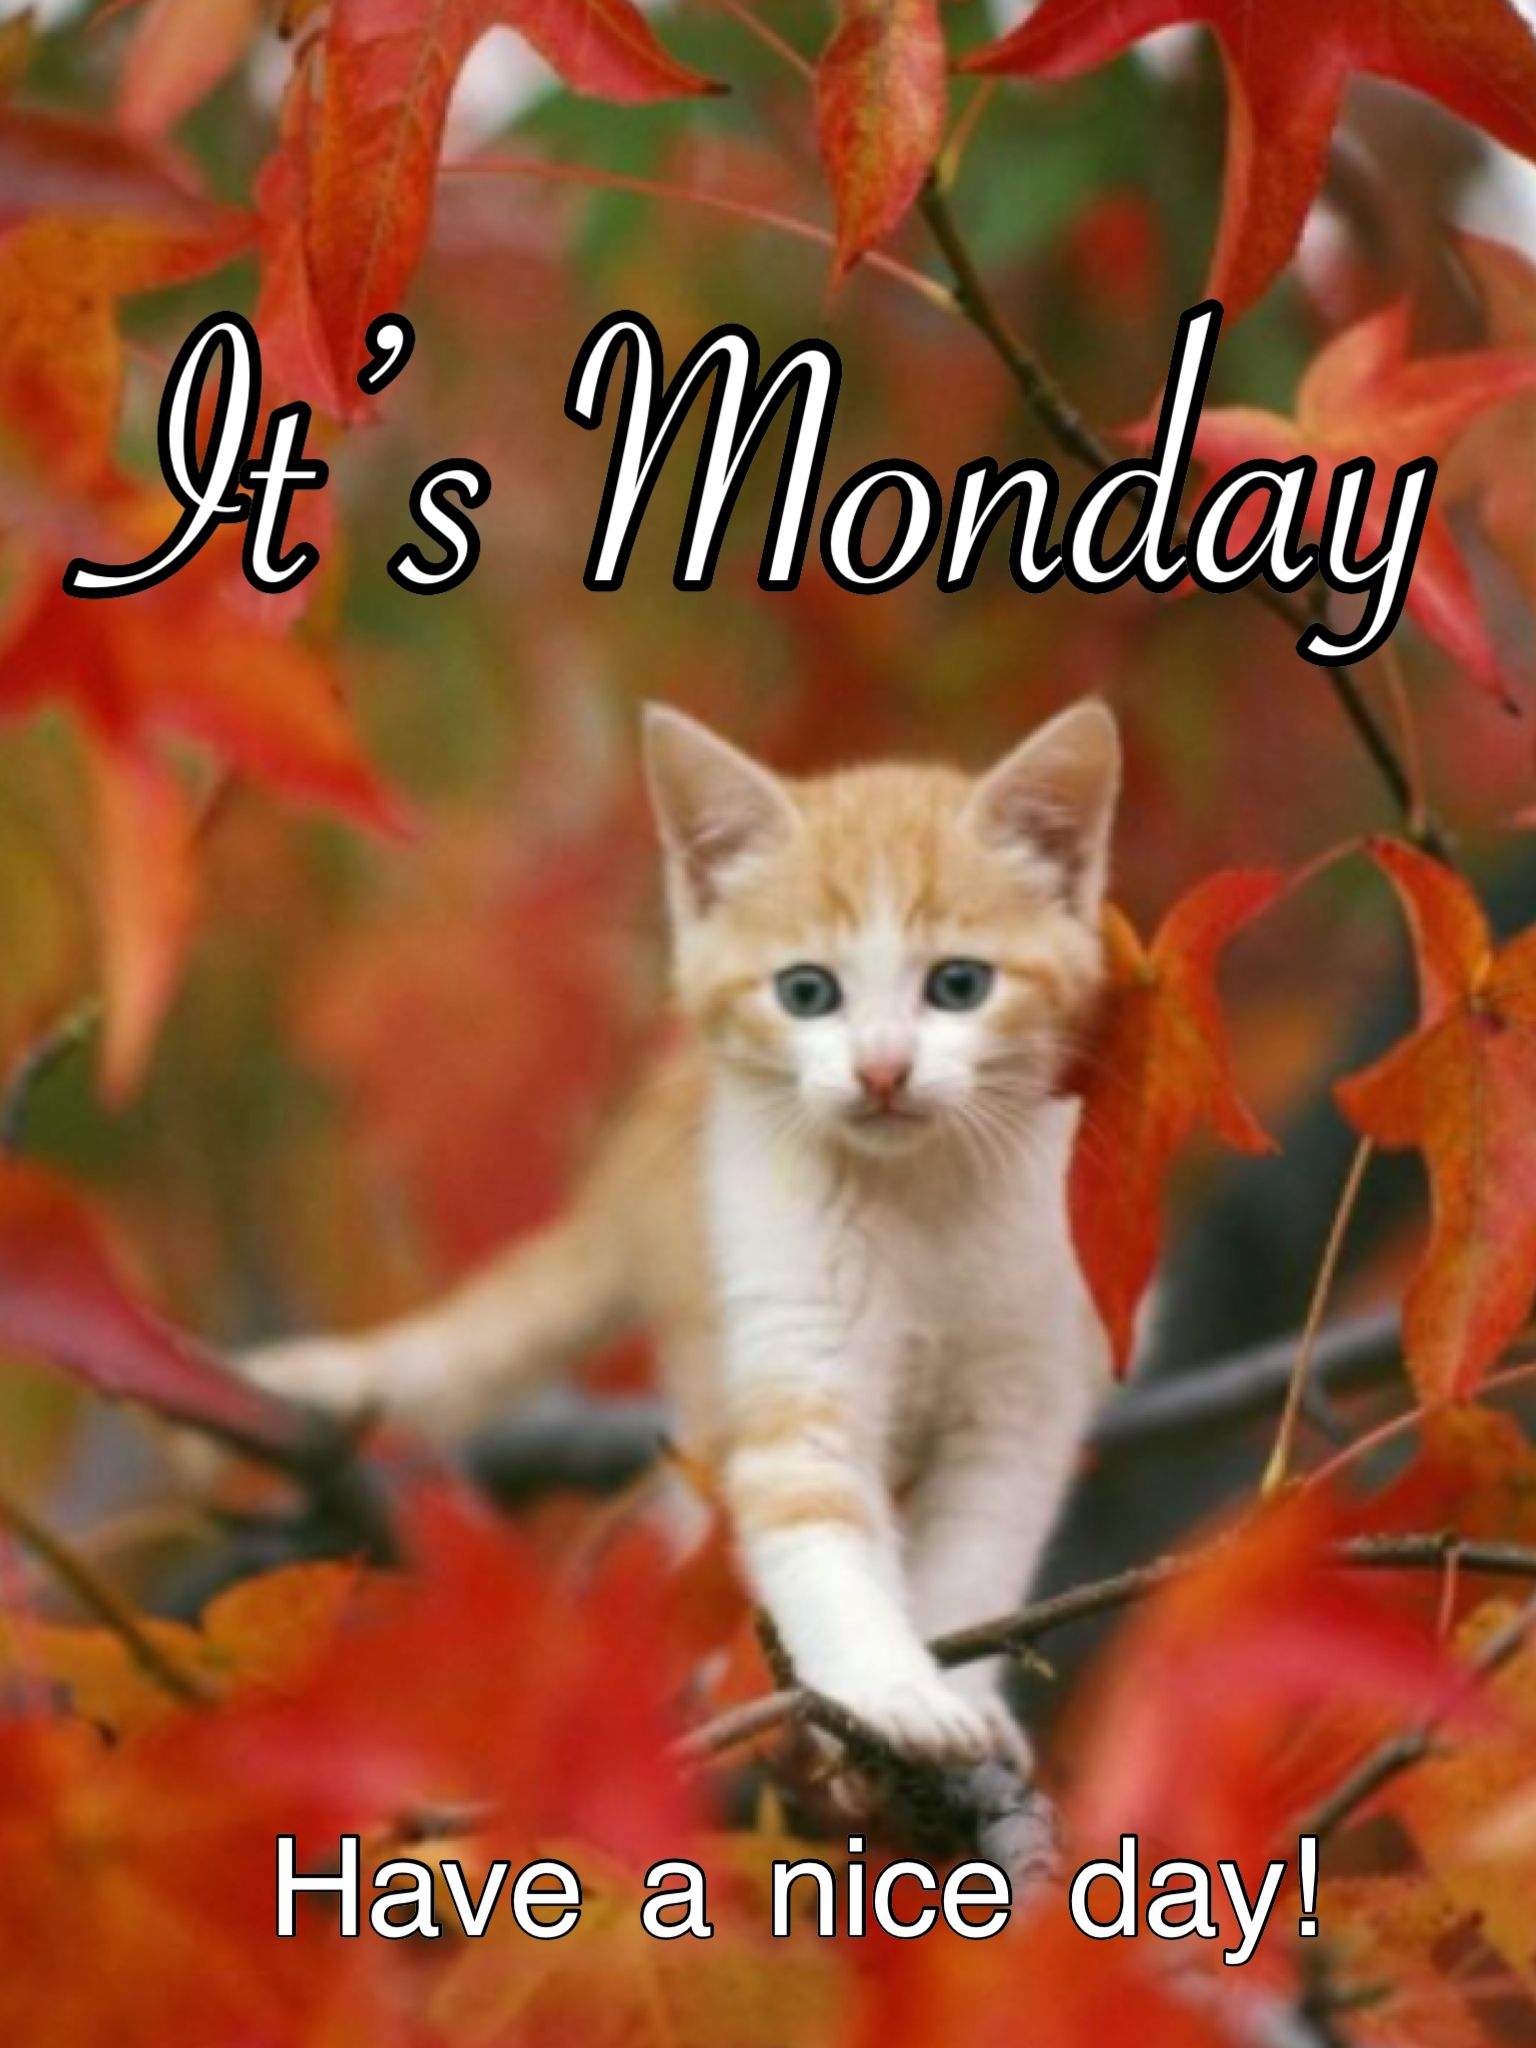 Monday Happy Monday Quotes Monday Quotes Good Night Love Messages